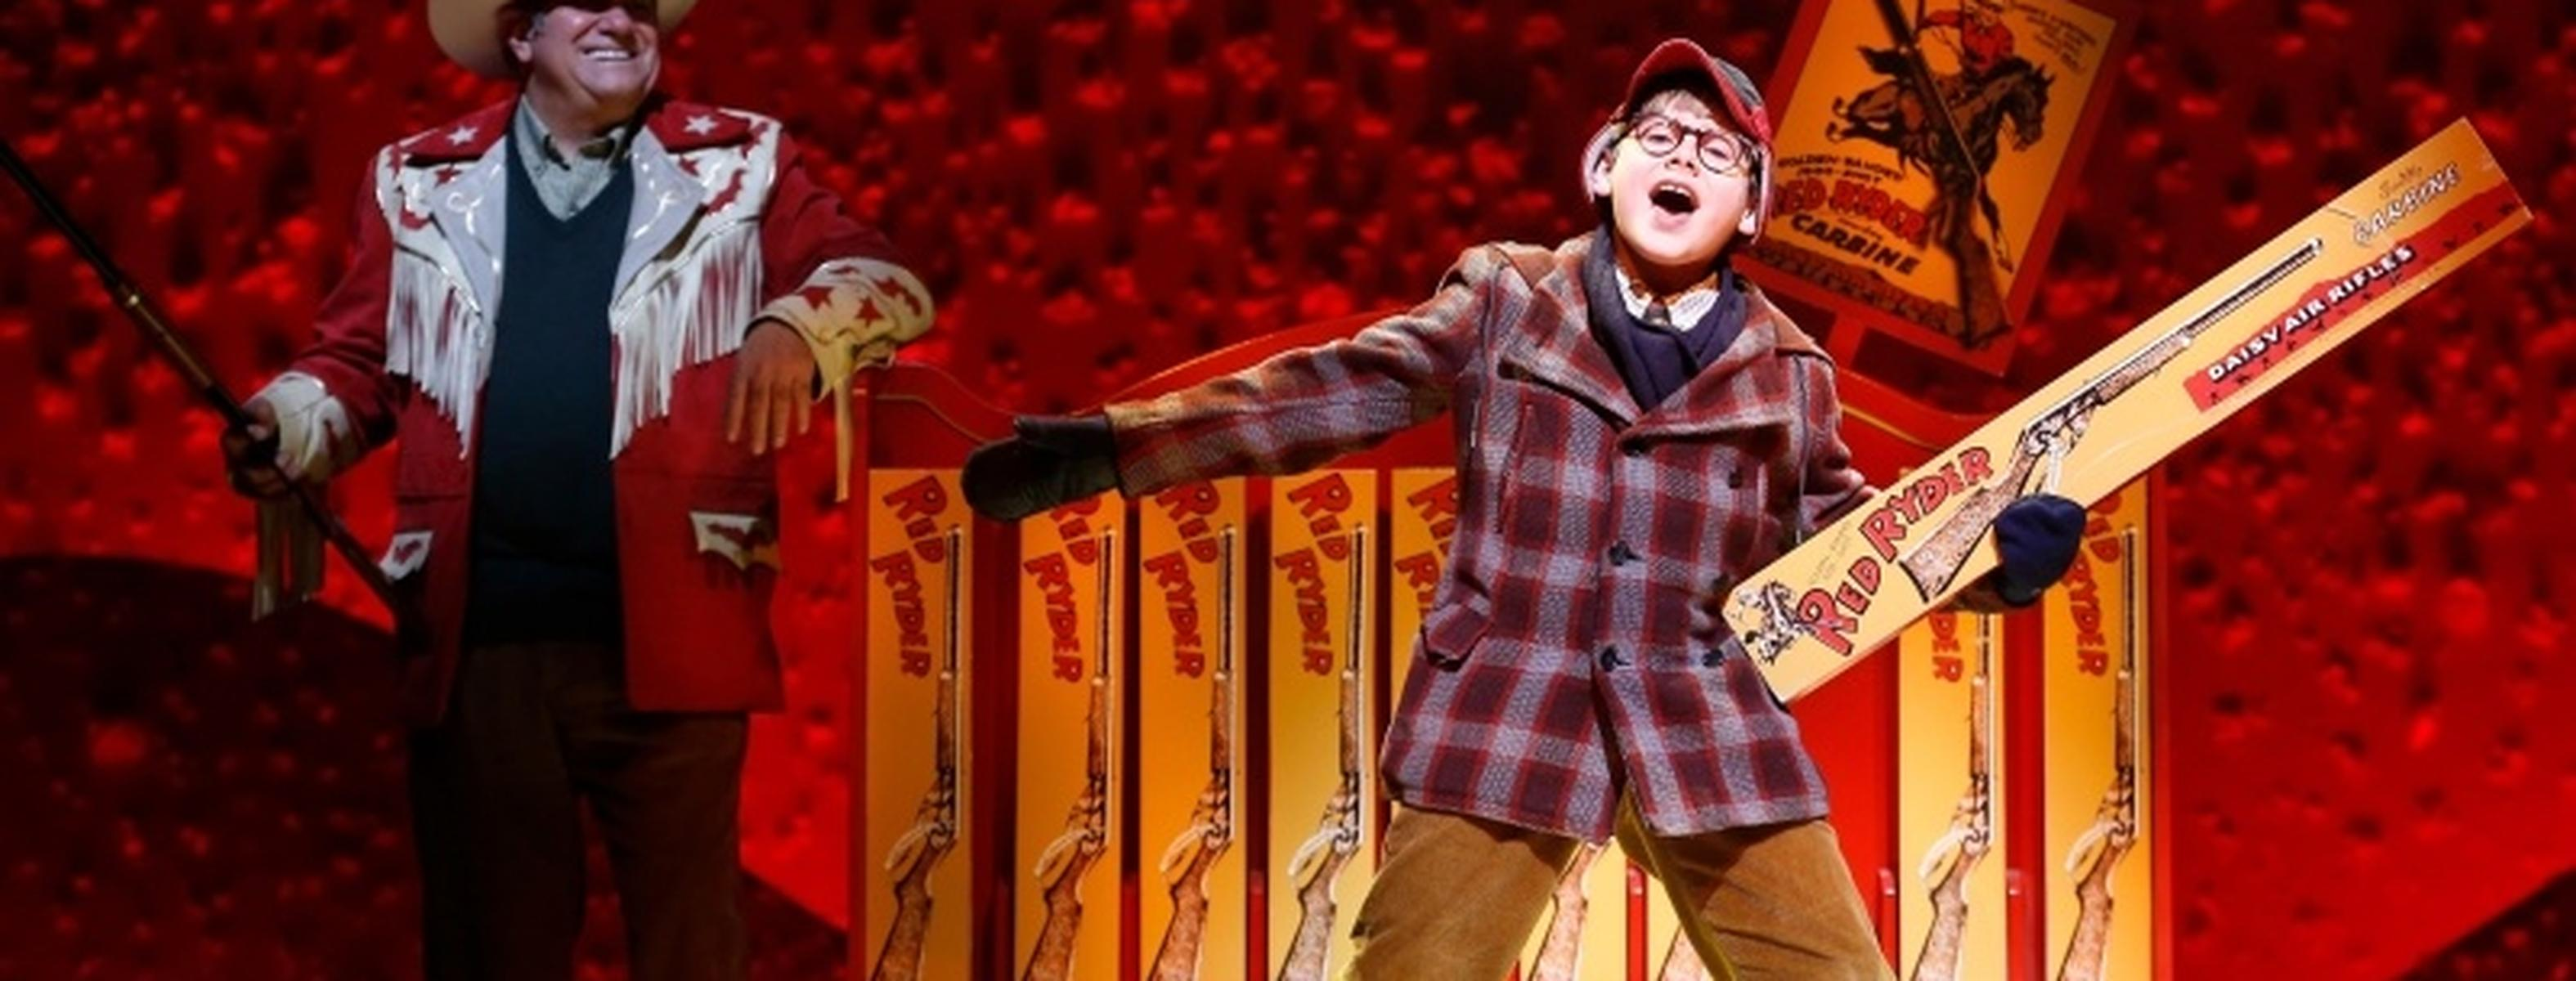 A Christmas Story Musical.A Christmas Story The Musical Doesn T Need To Sing But You